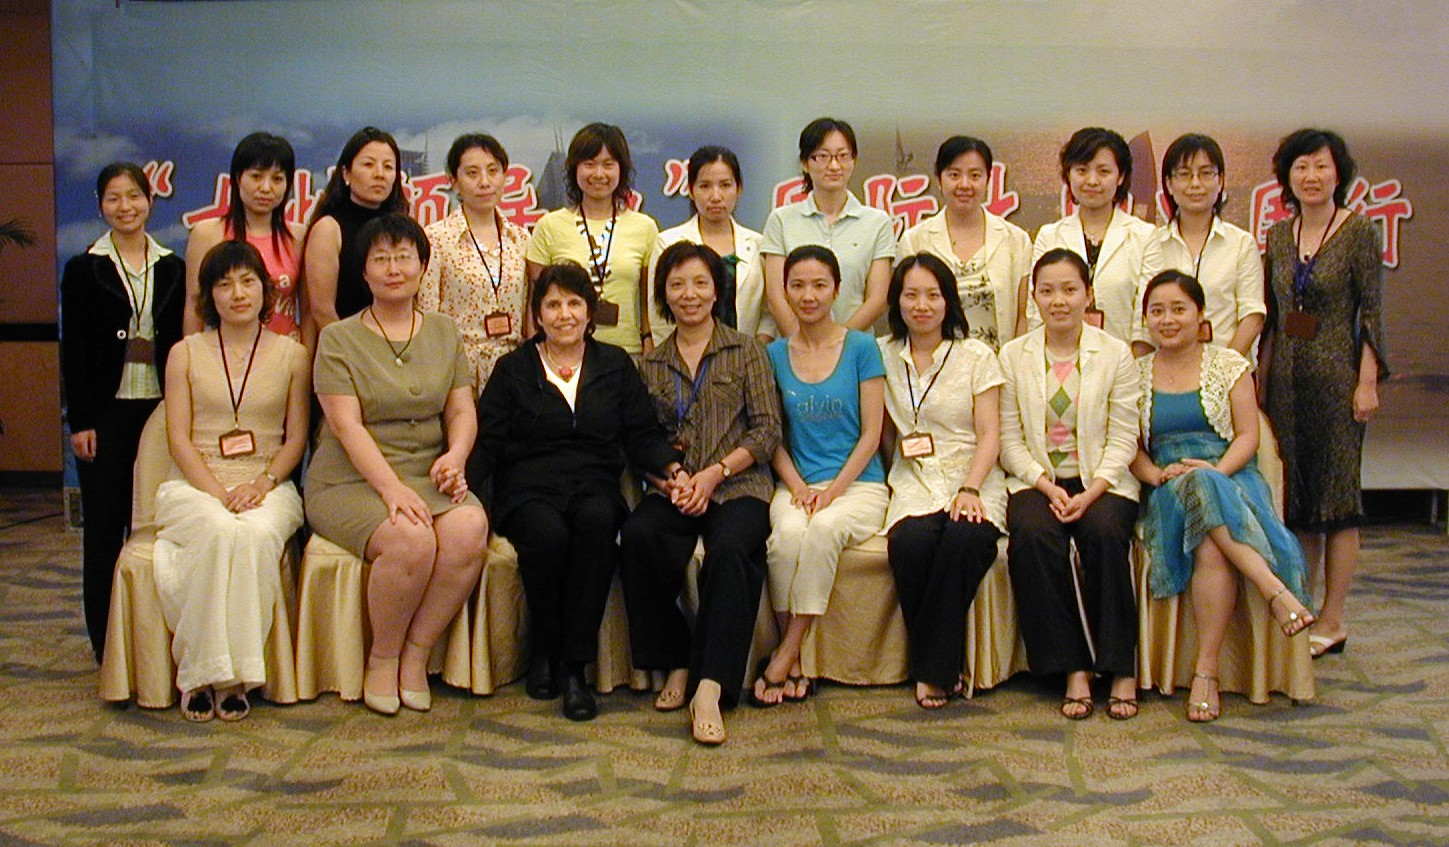 Participants Women's Leadership Conference Shanghai